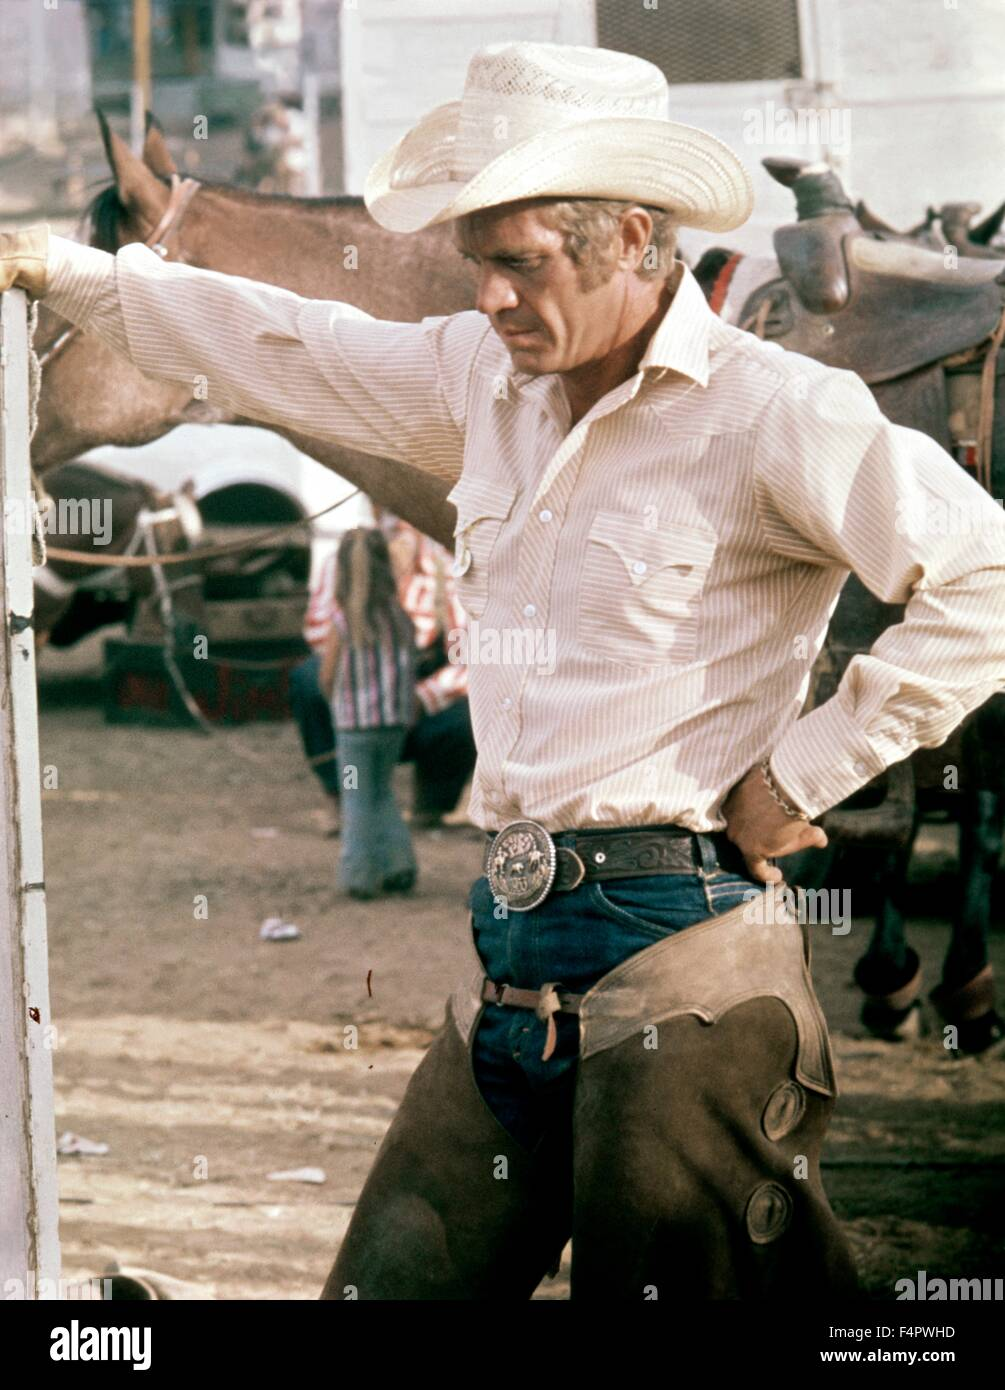 Steve McQueen / Junior Bonner / 1972 directed by Sam Peckinpah [ABC Pictures Corporation / Ciner] - Stock Image